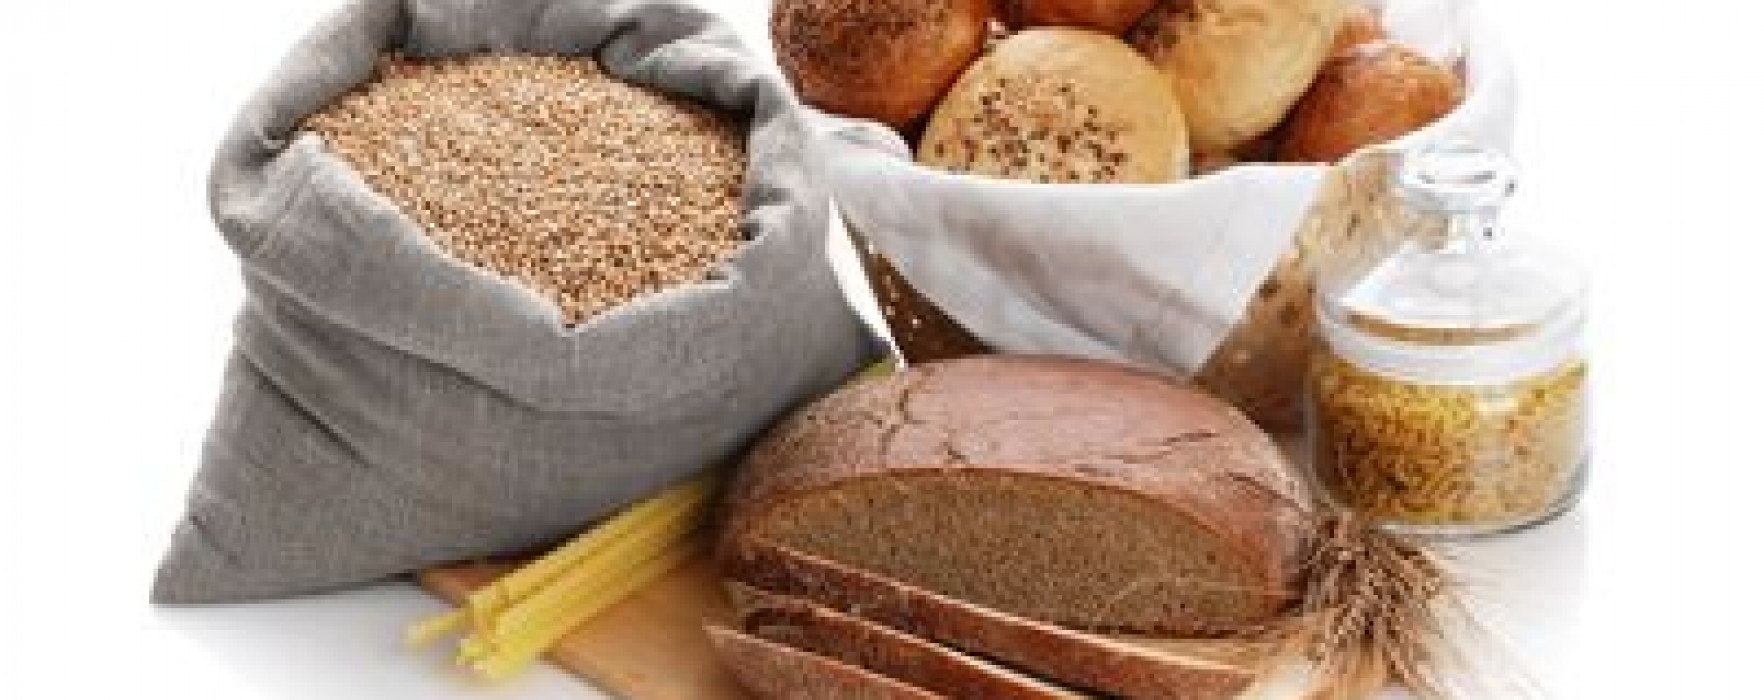 Should All Patients with IBS be Screened for Celiac Disease?